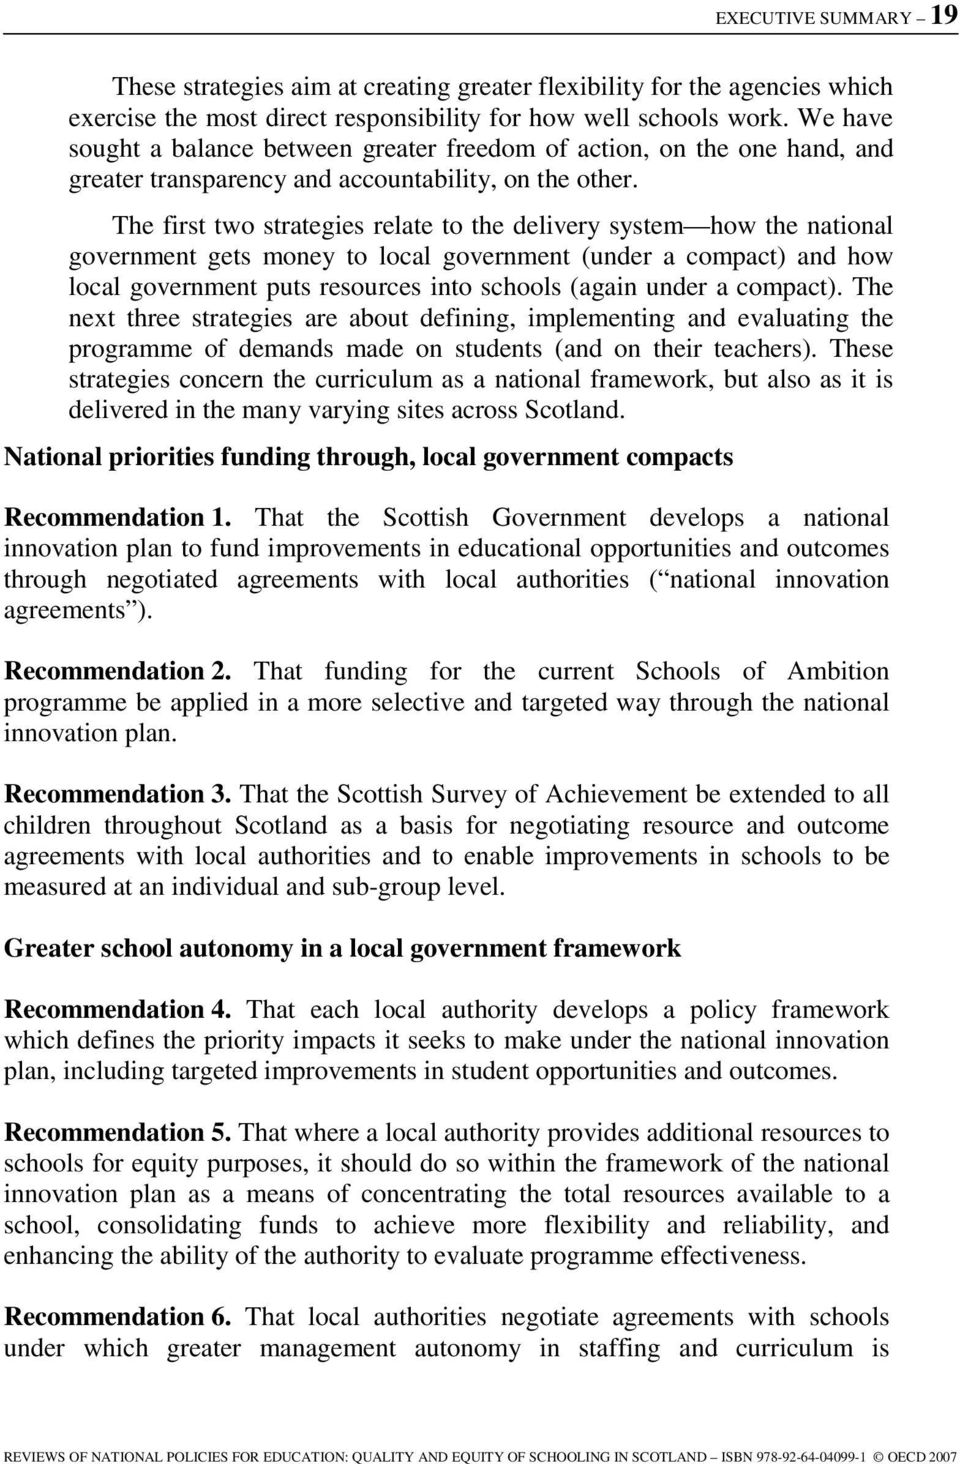 The first two strategies relate to the delivery system how the national government gets money to local government (under a compact) and how local government puts resources into schools (again under a